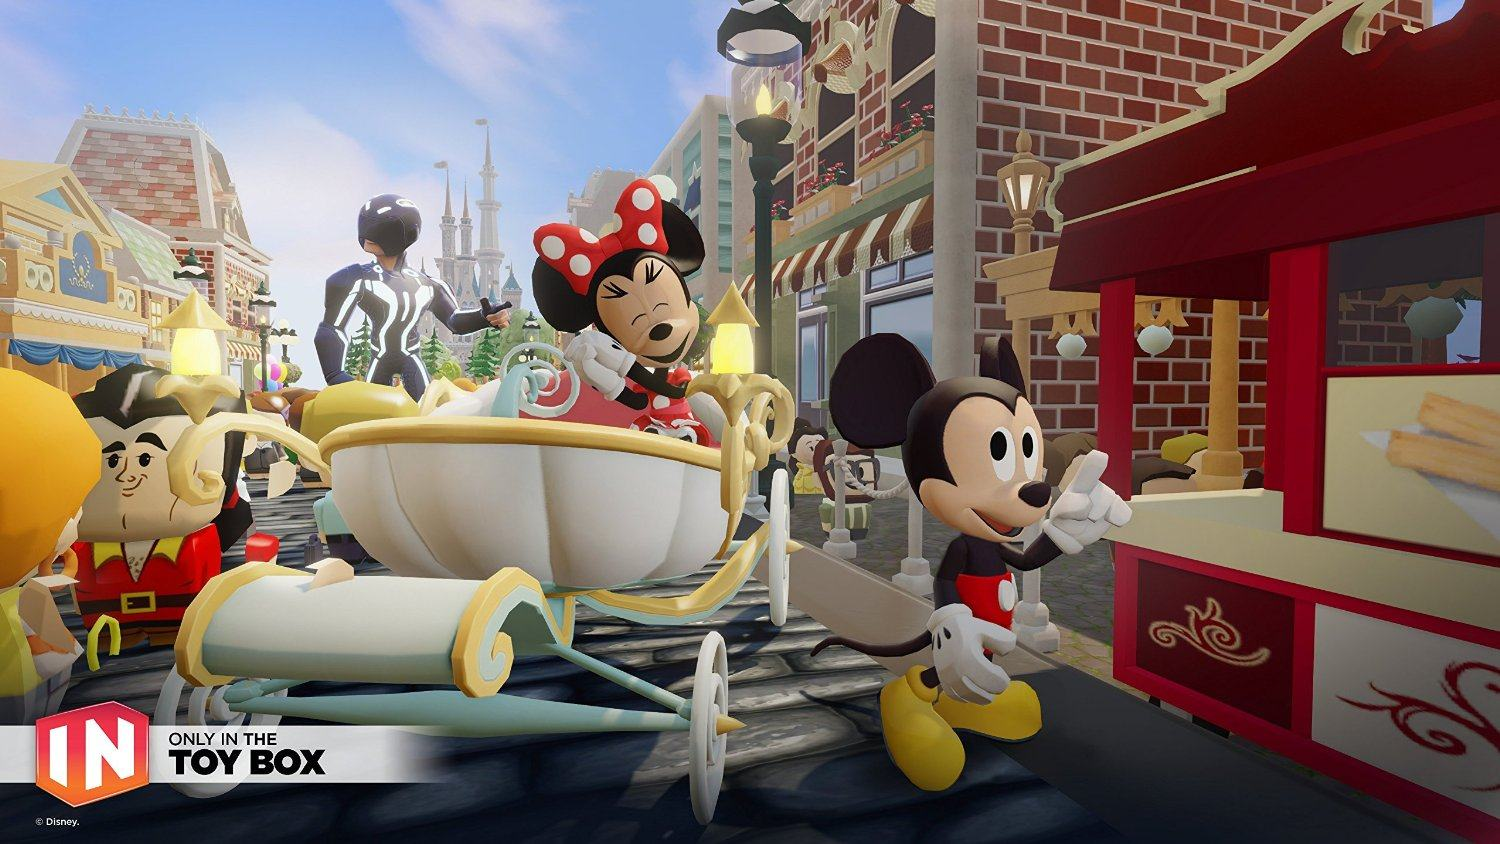 Disney-Infinity-3.0-Edition-Mickey-and-Minnie-Mouse-Figures-3